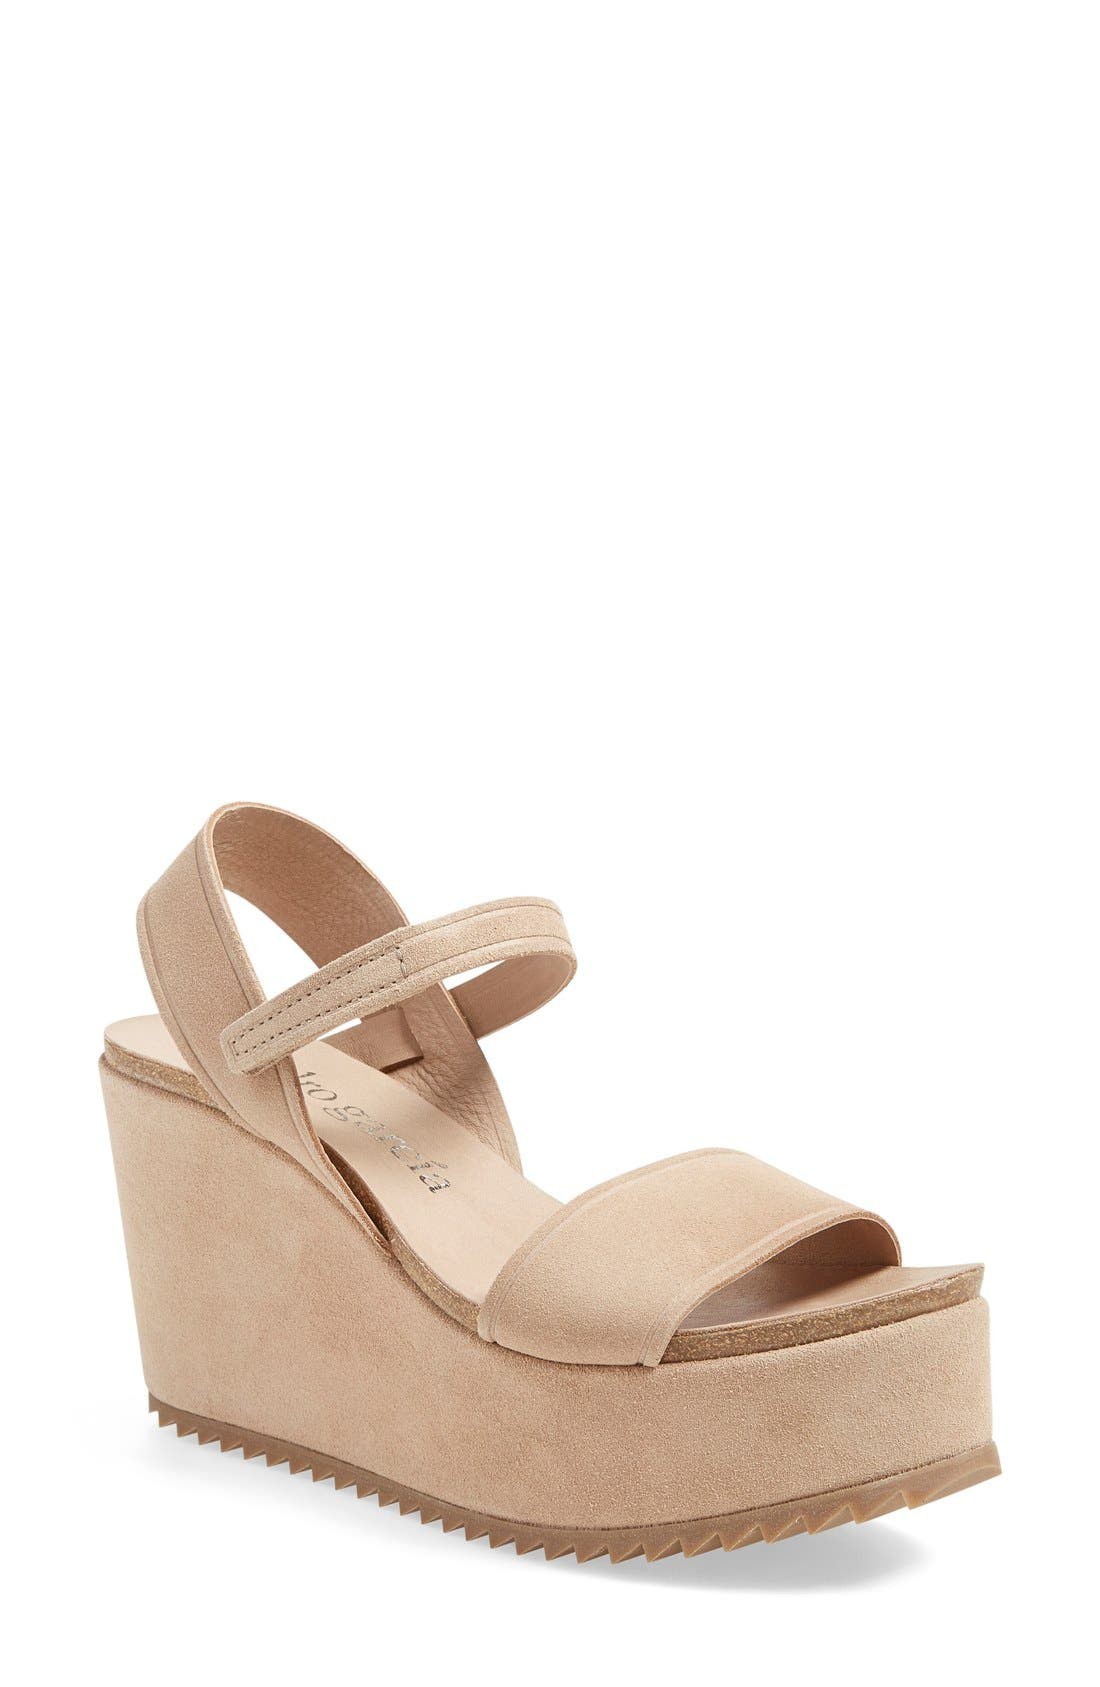 'Dorothy' Wedge,                             Main thumbnail 1, color,                             Light Camel Suede